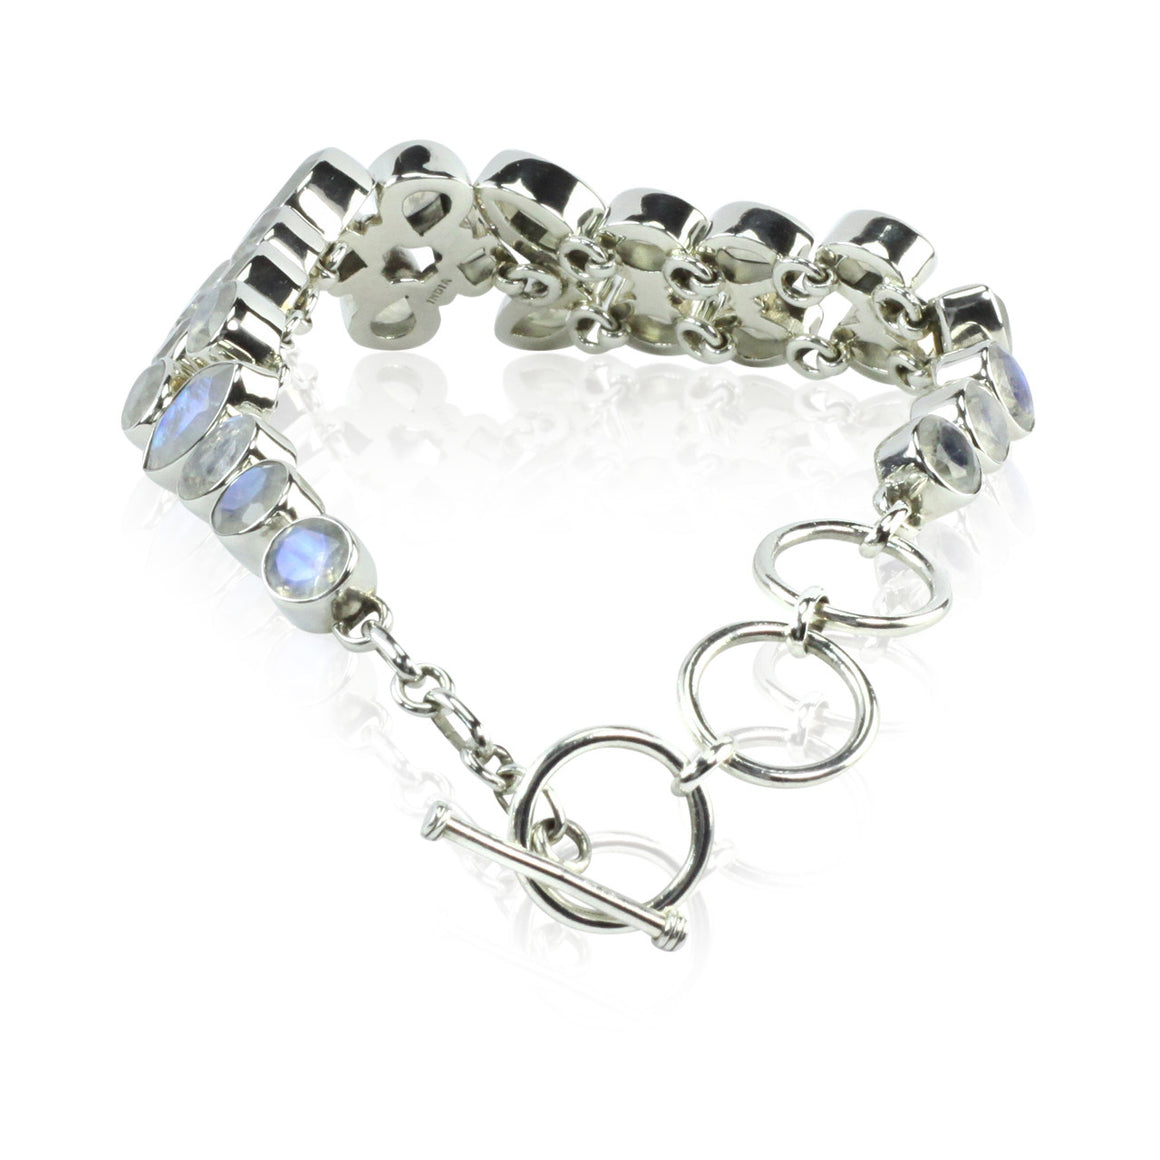 Faceted Rainbow Moonstone Link Bracelet